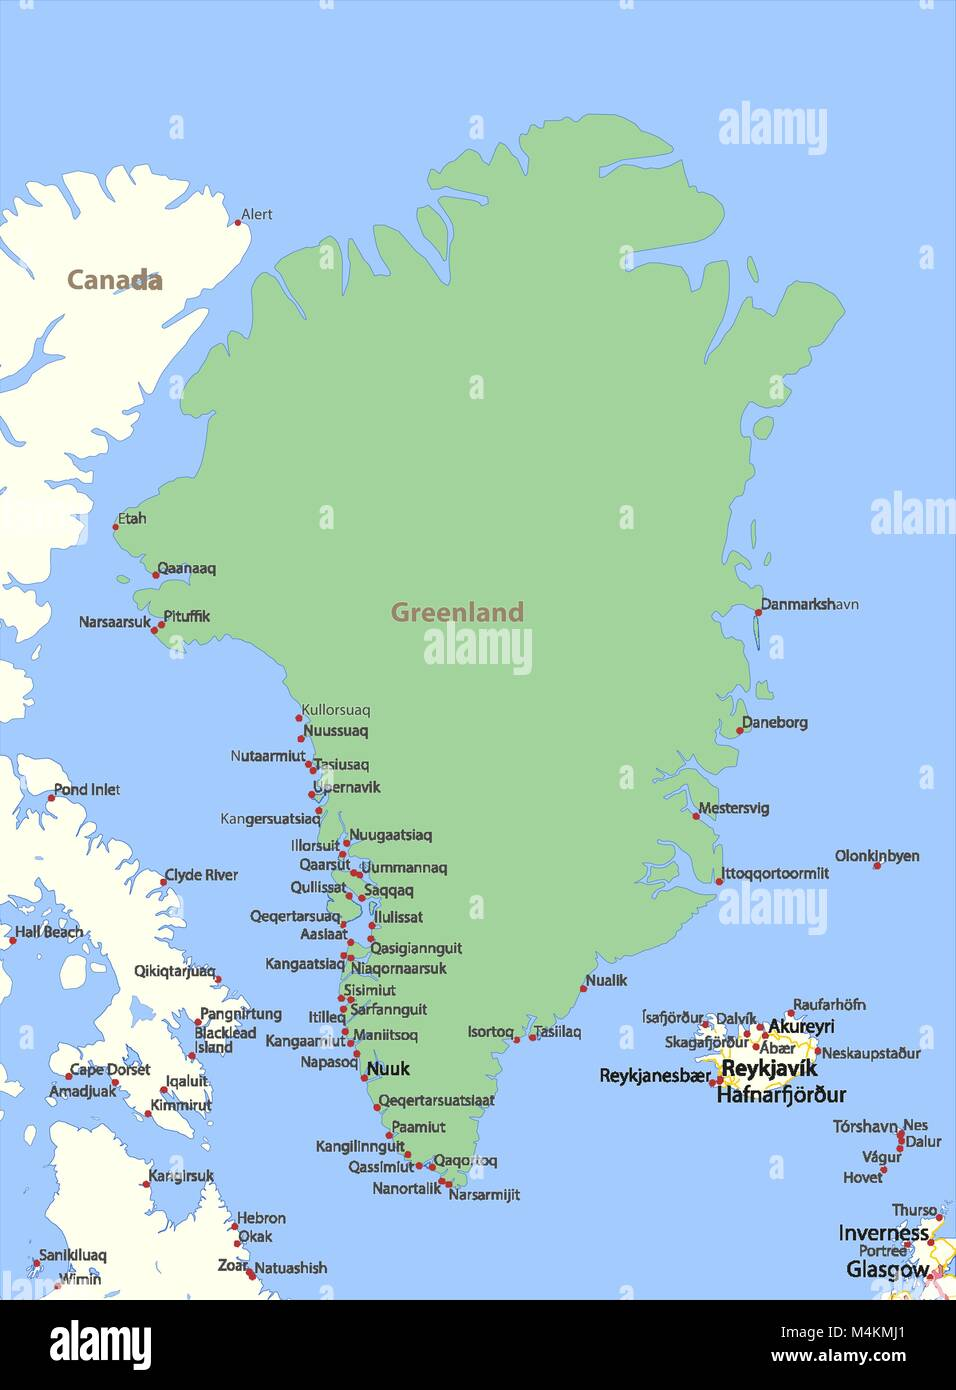 Outline map greenland stock photos outline map greenland stock map of greenland shows country borders urban areas place names and roads gumiabroncs Image collections